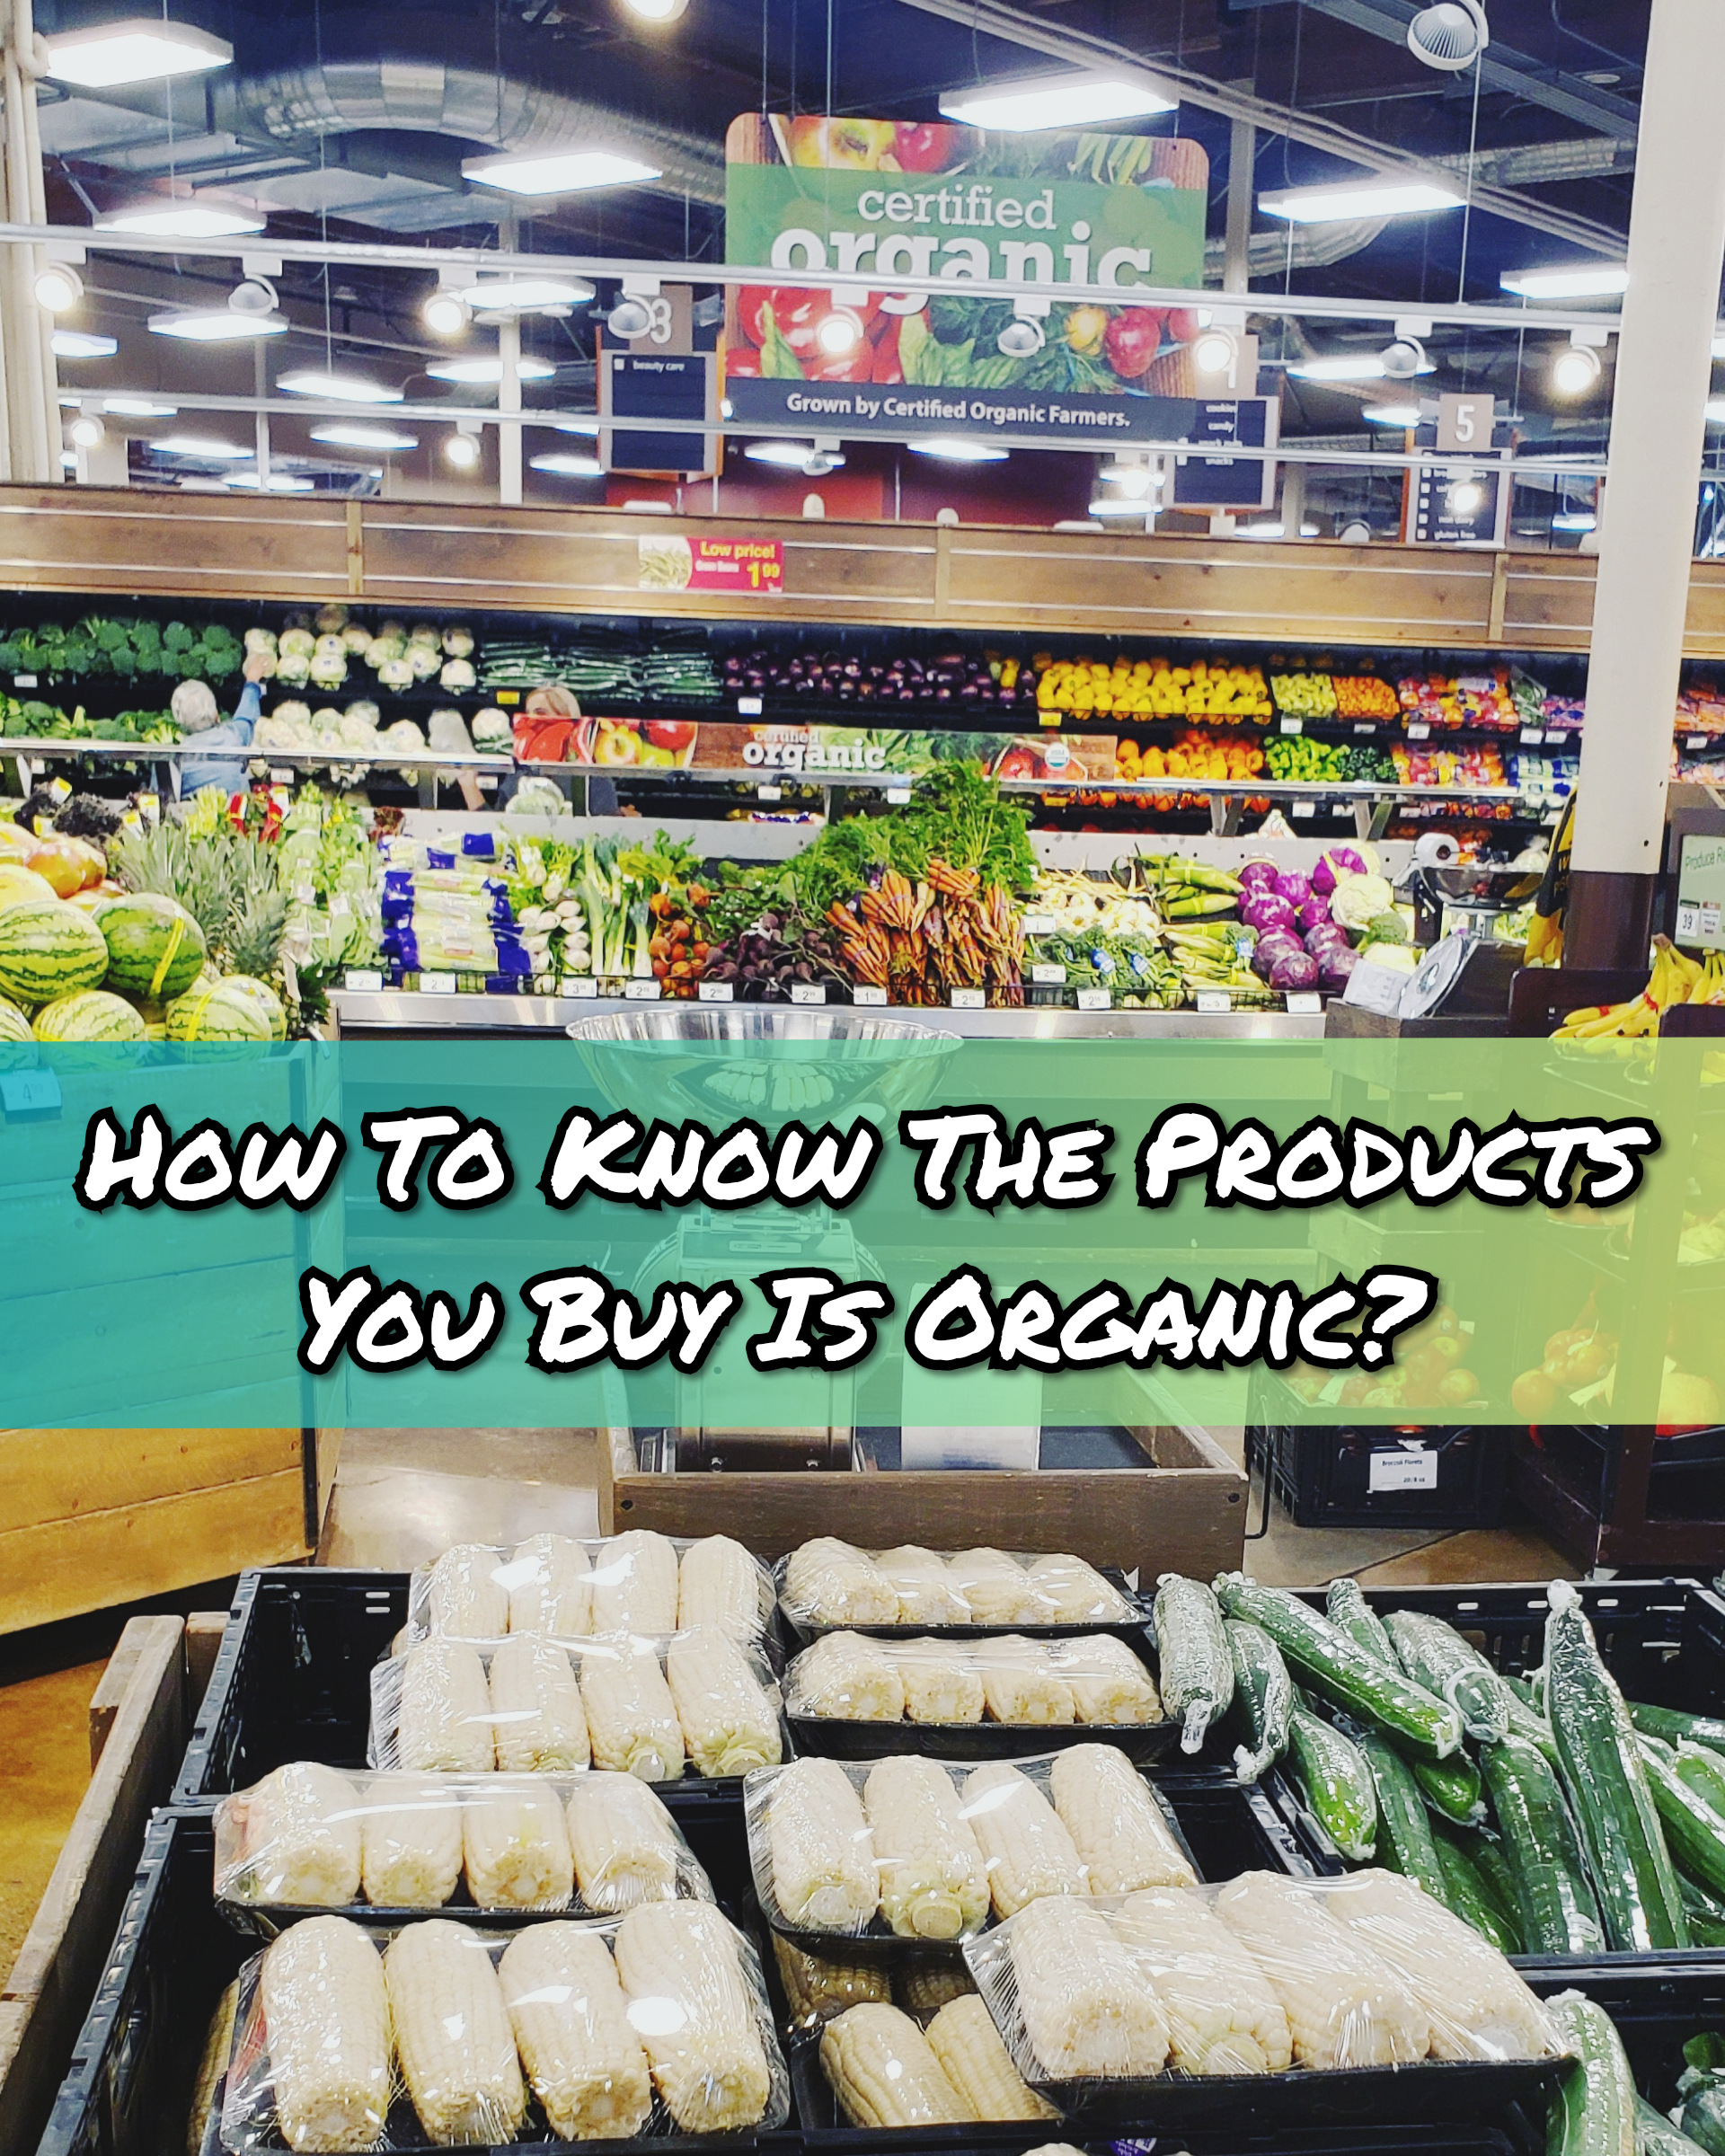 How To know the product you buy is organic?